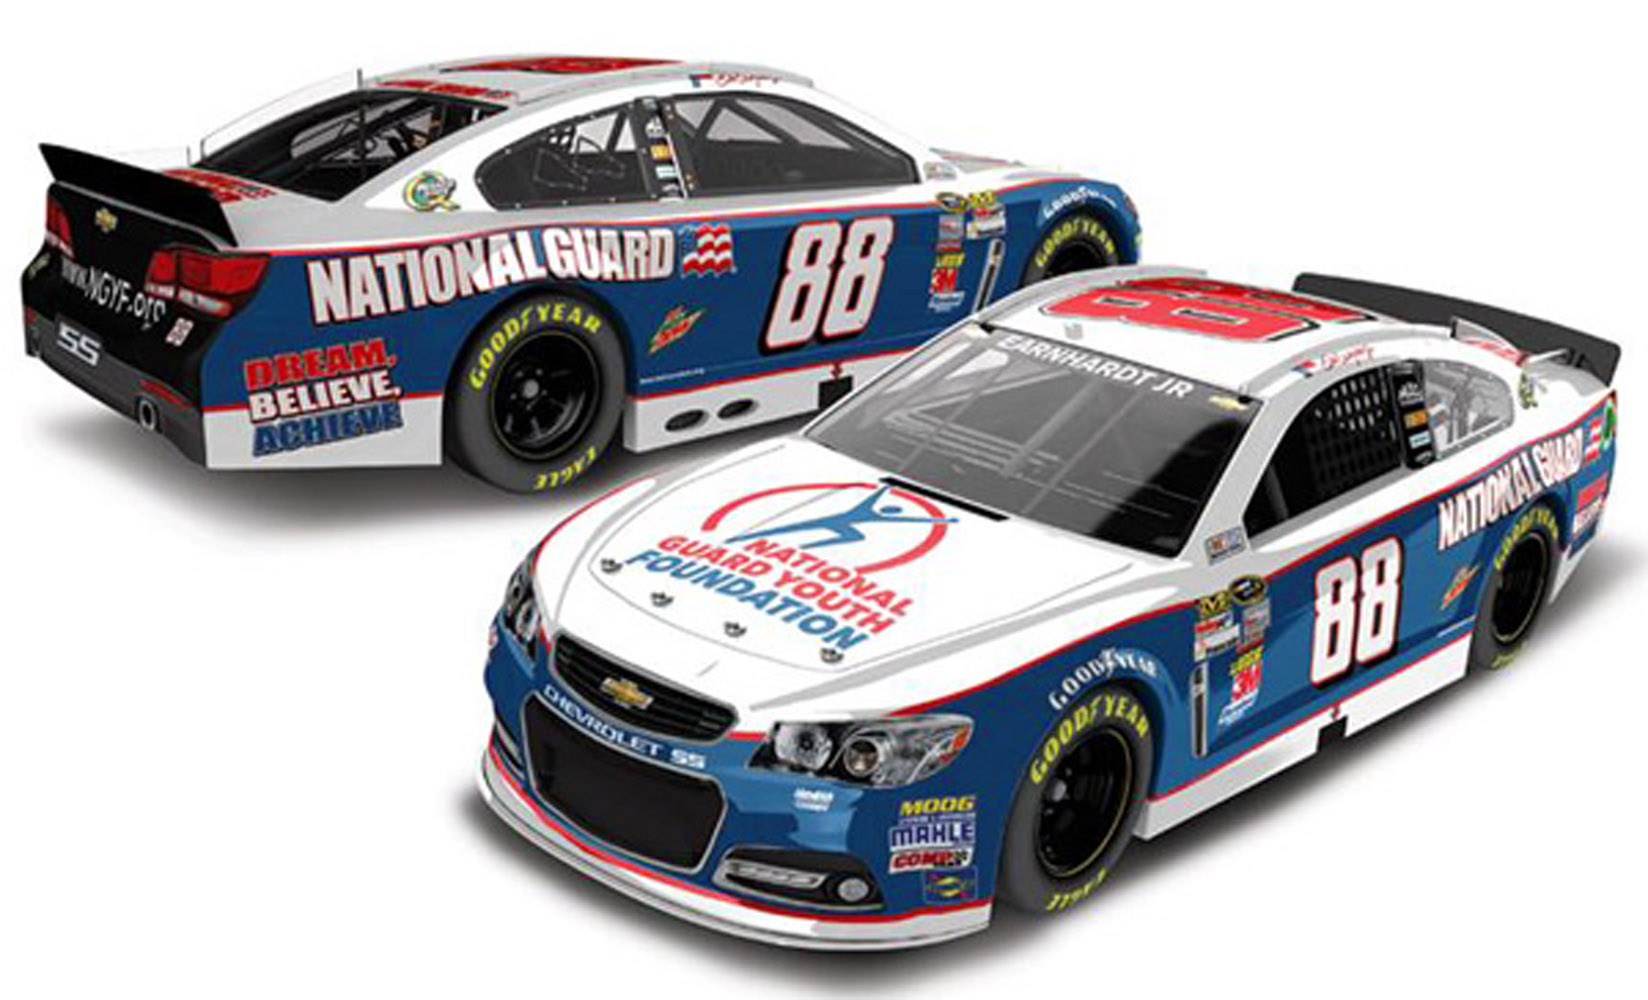 2013 Dale Earnhardt Jr #88 N / G Youth Foundation 1:24 Diecast Car